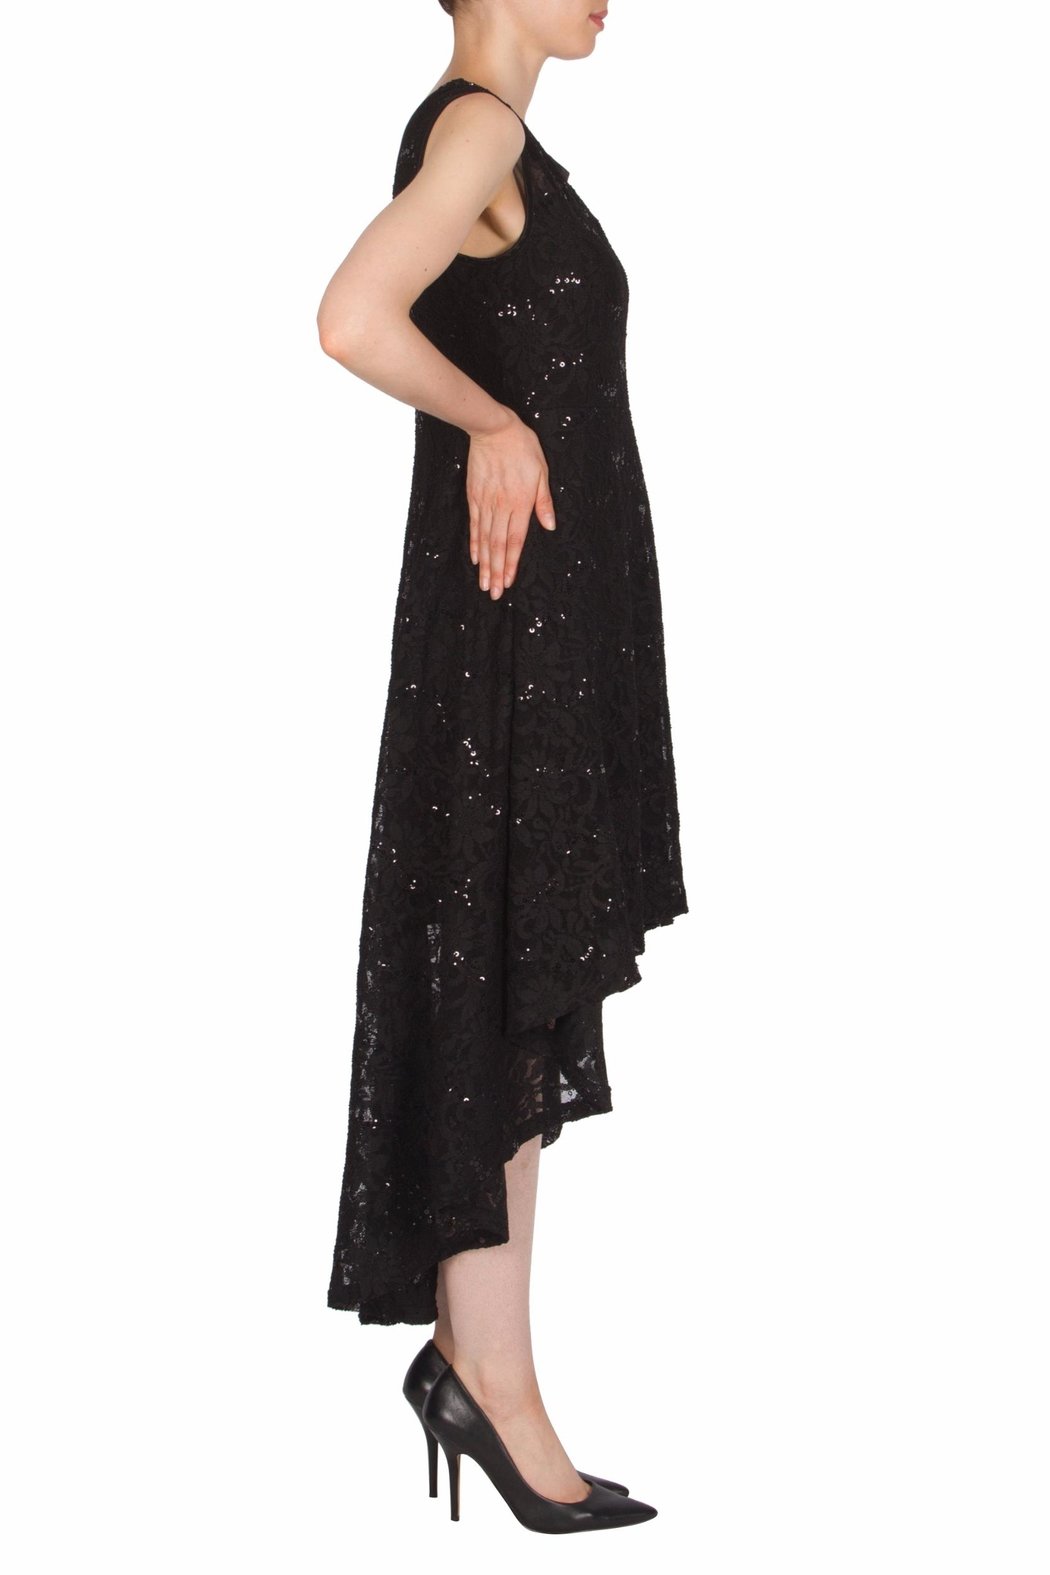 Joseph Ribkoff High Low Lace Dress - Front Full Image